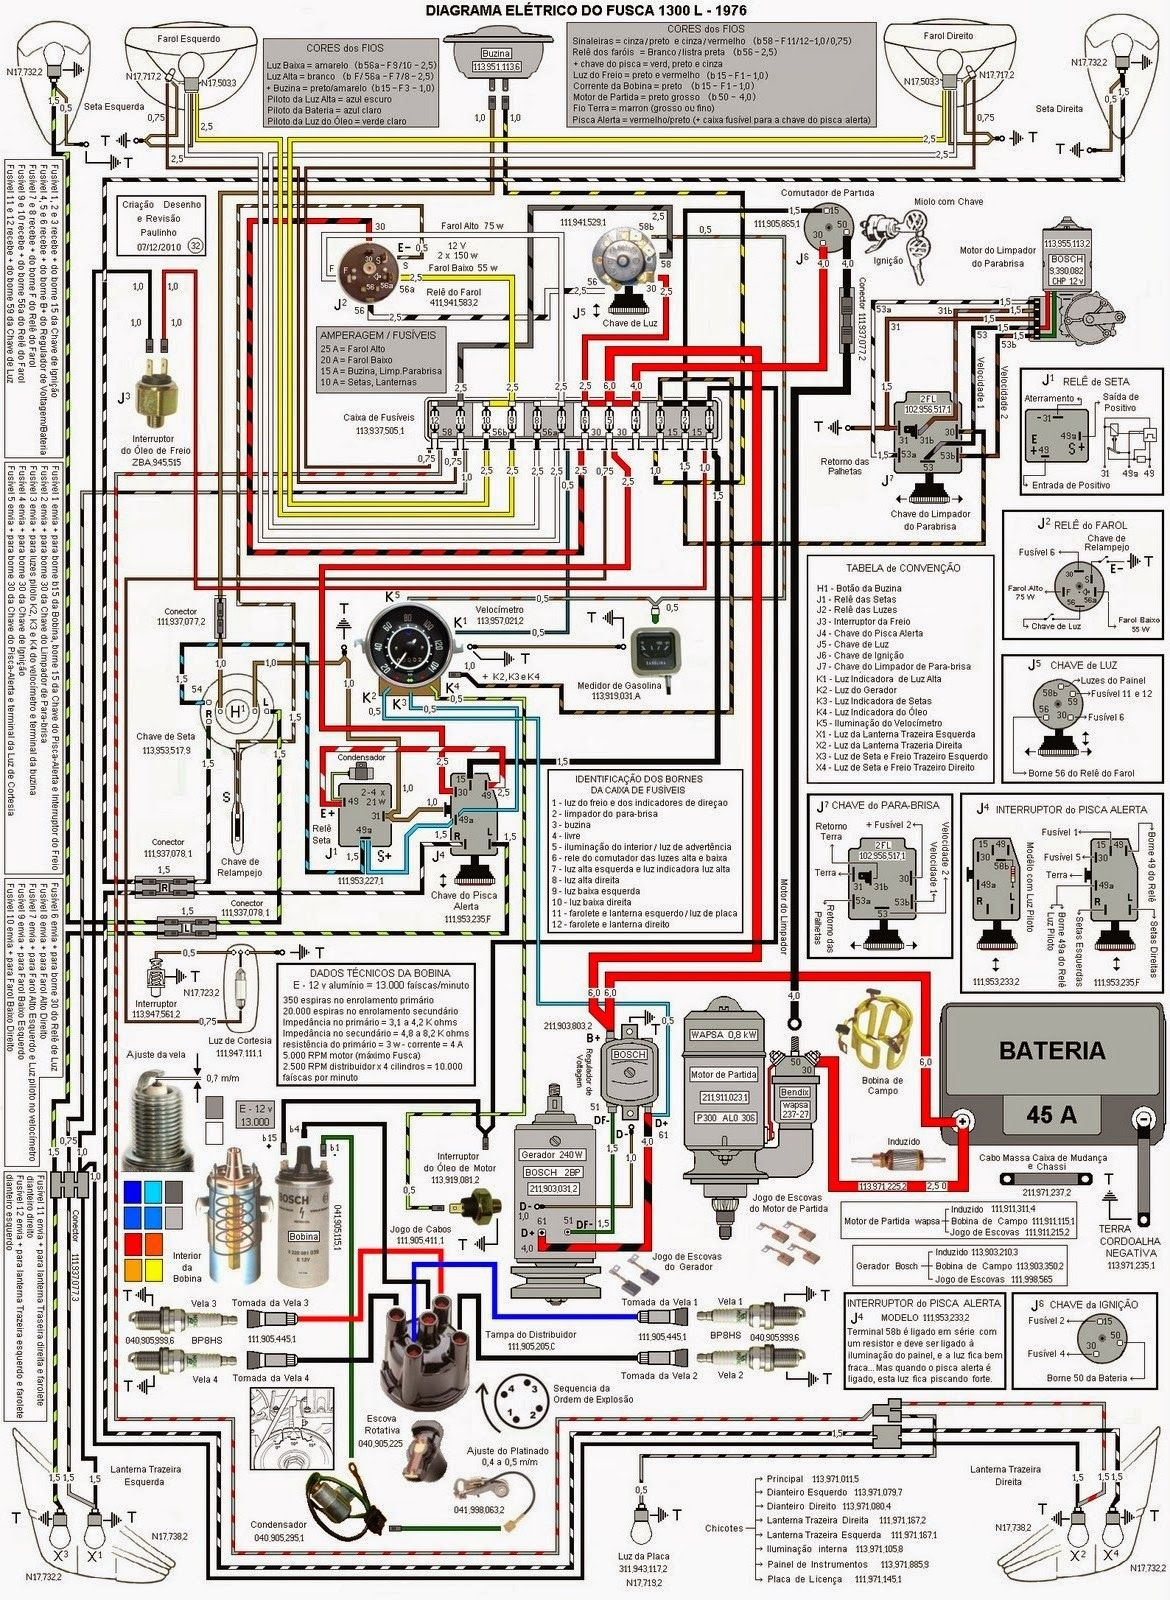 Pin By Matthew West On Volkswagen Beetles Vw 1600 Beetle Wiring Diagram The Nice Thing About A Is You Can Figure It Out Even If Dont Speak Language